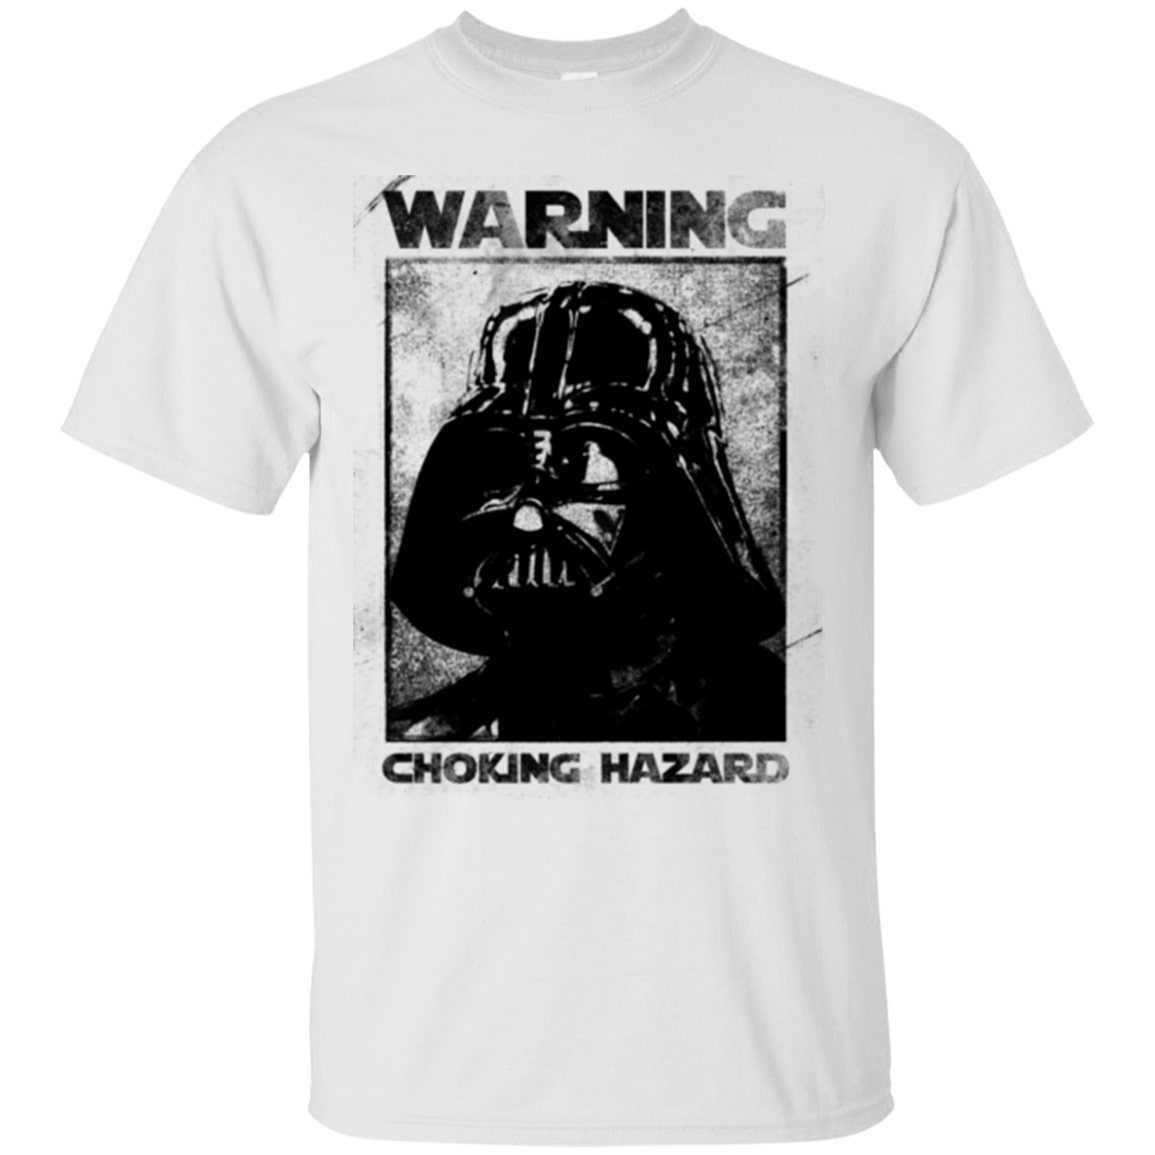 star wars darth vader warning choking hazard shirt 3